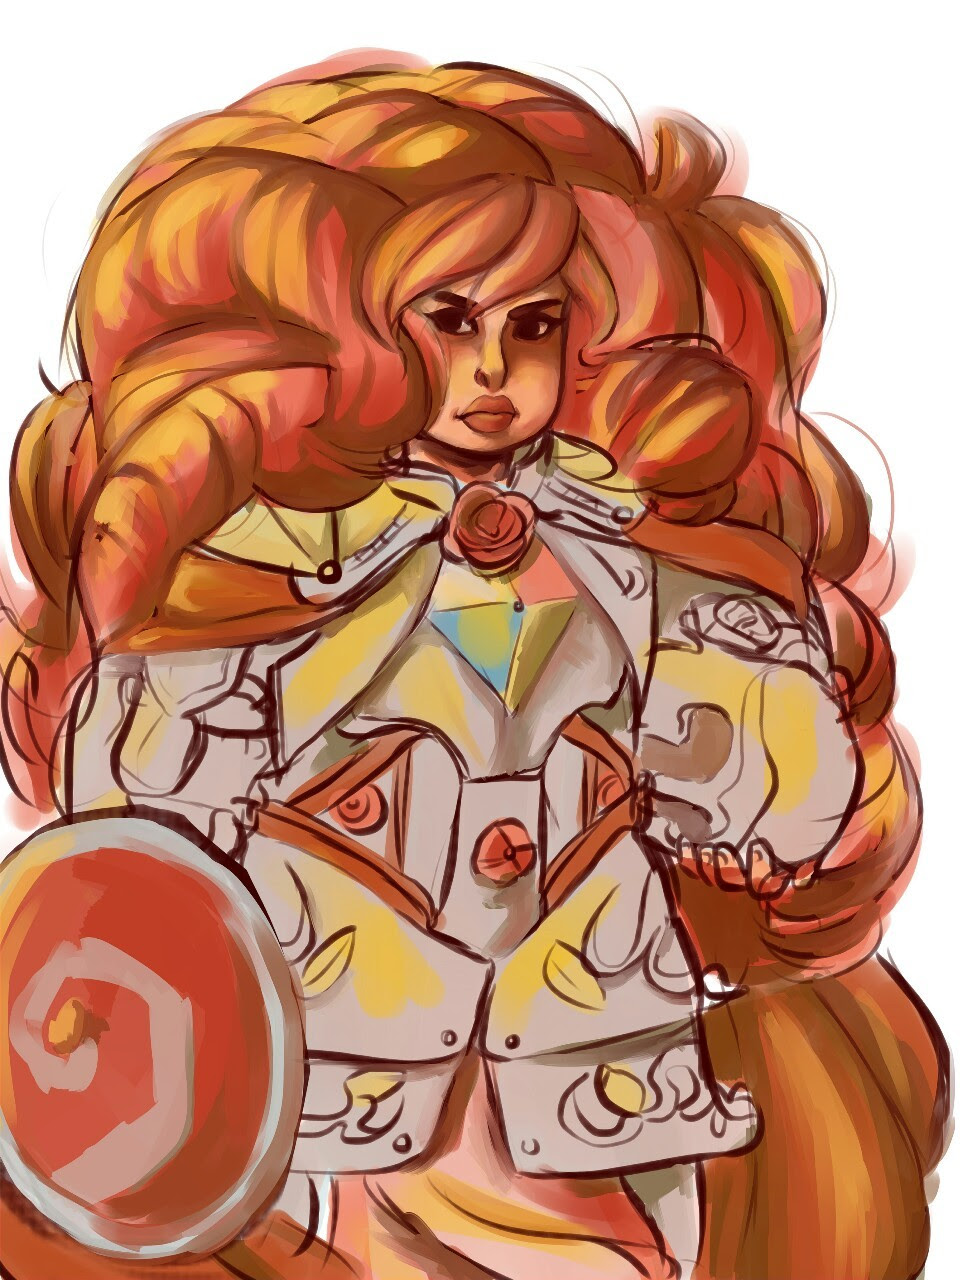 I want to see a strong lady look even stronger wearing armor is that such a bad thing?